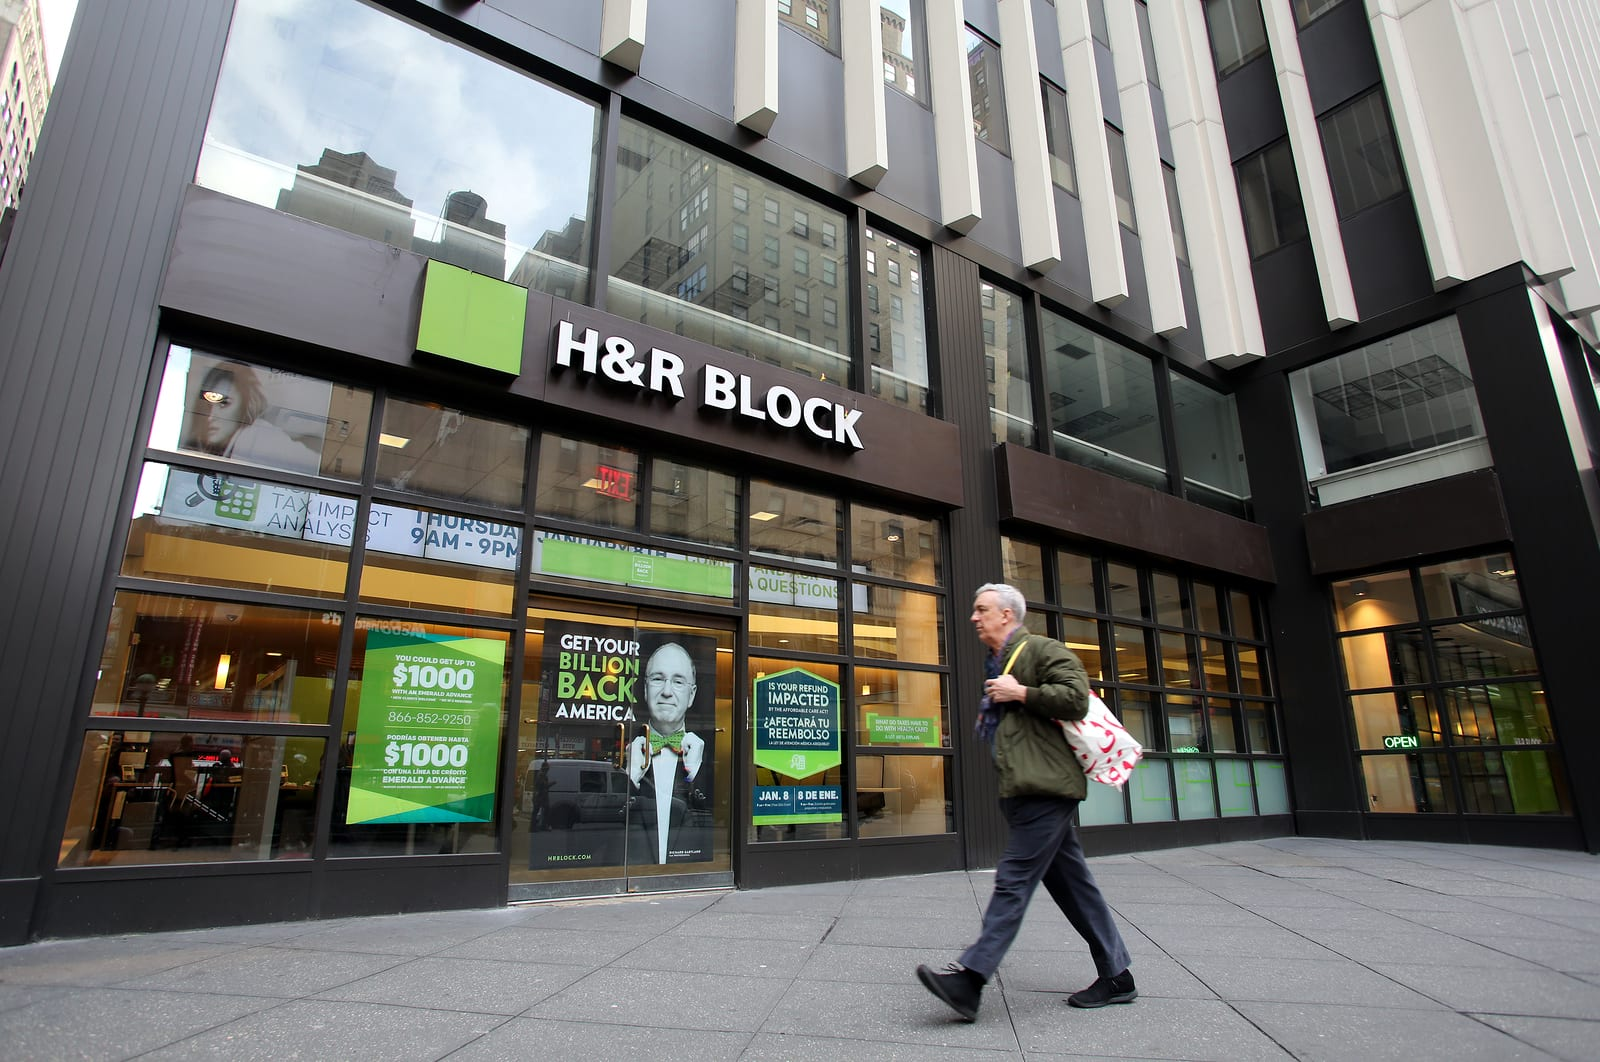 H&R Block to Release Fiscal Second Quarter Results December 4, 2019